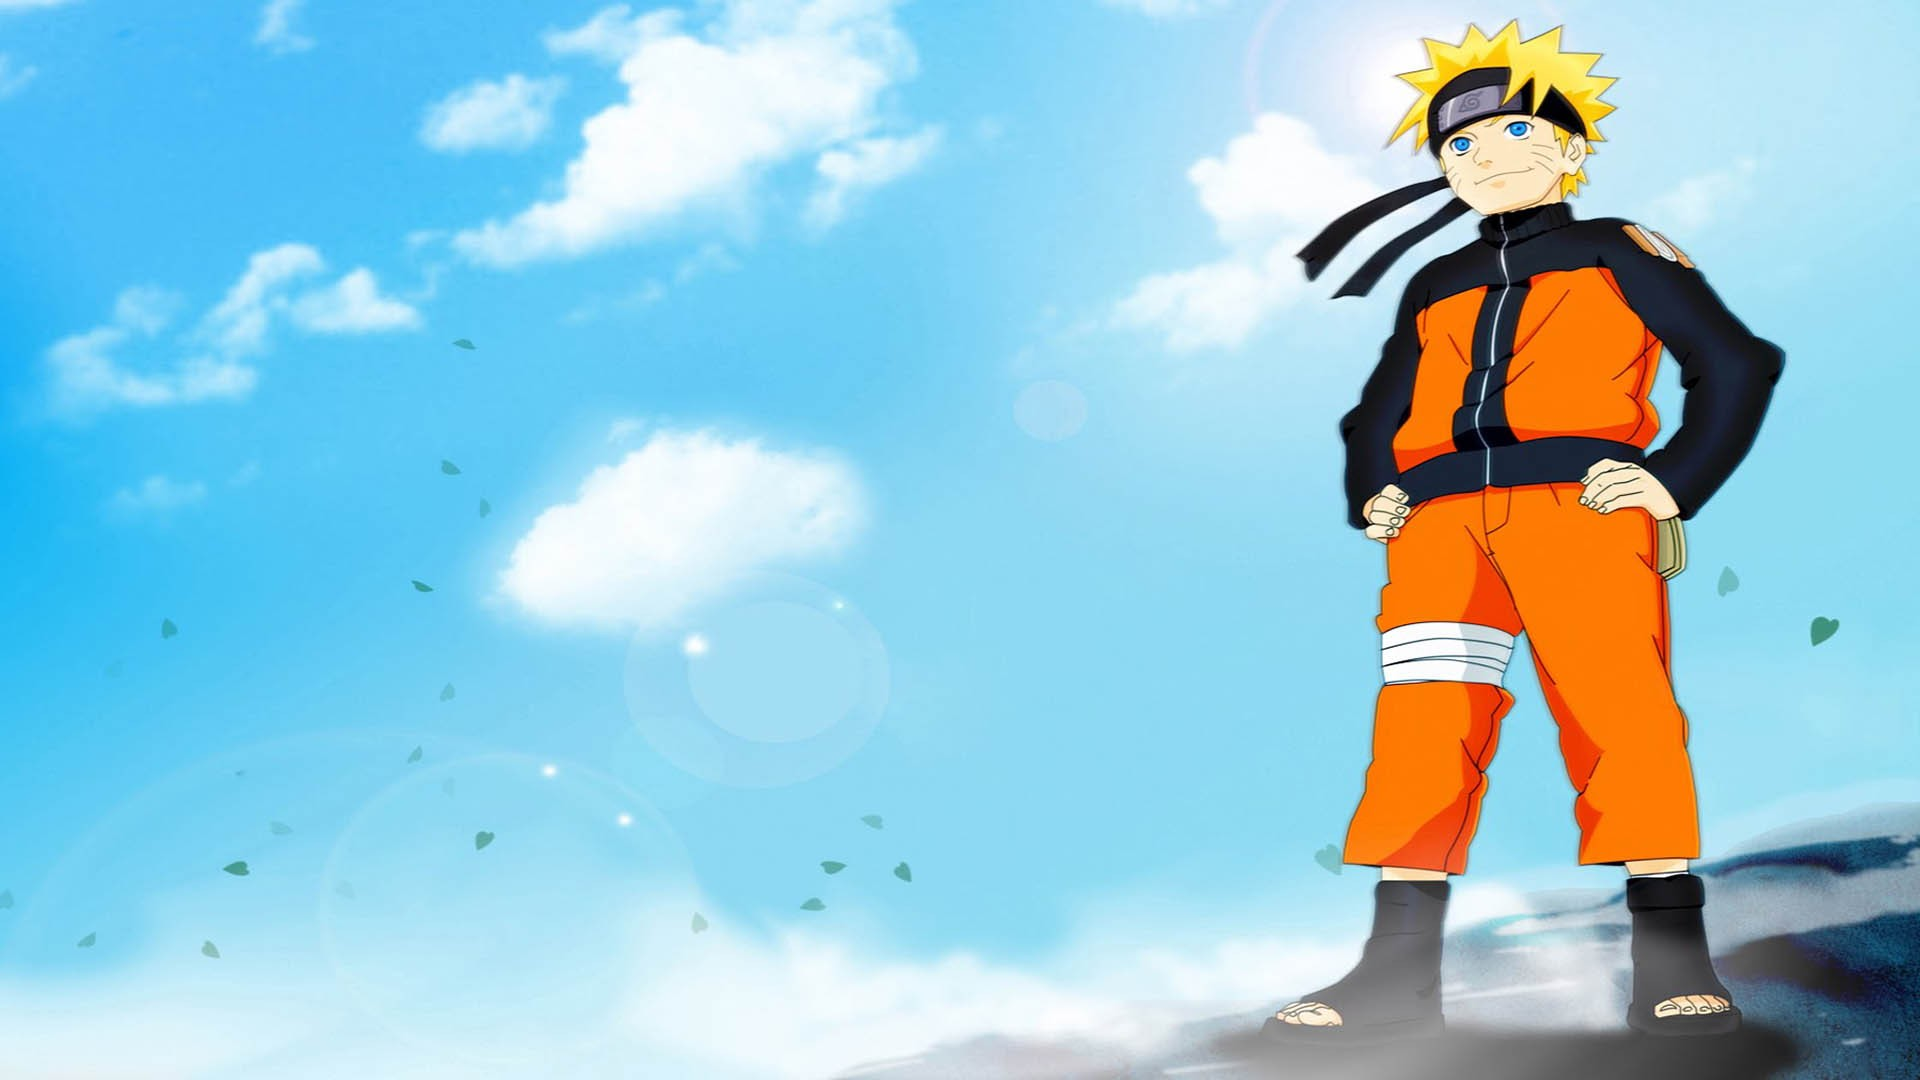 Naruto background download free beautiful high - Anime wallpaper hd iphone 7 ...